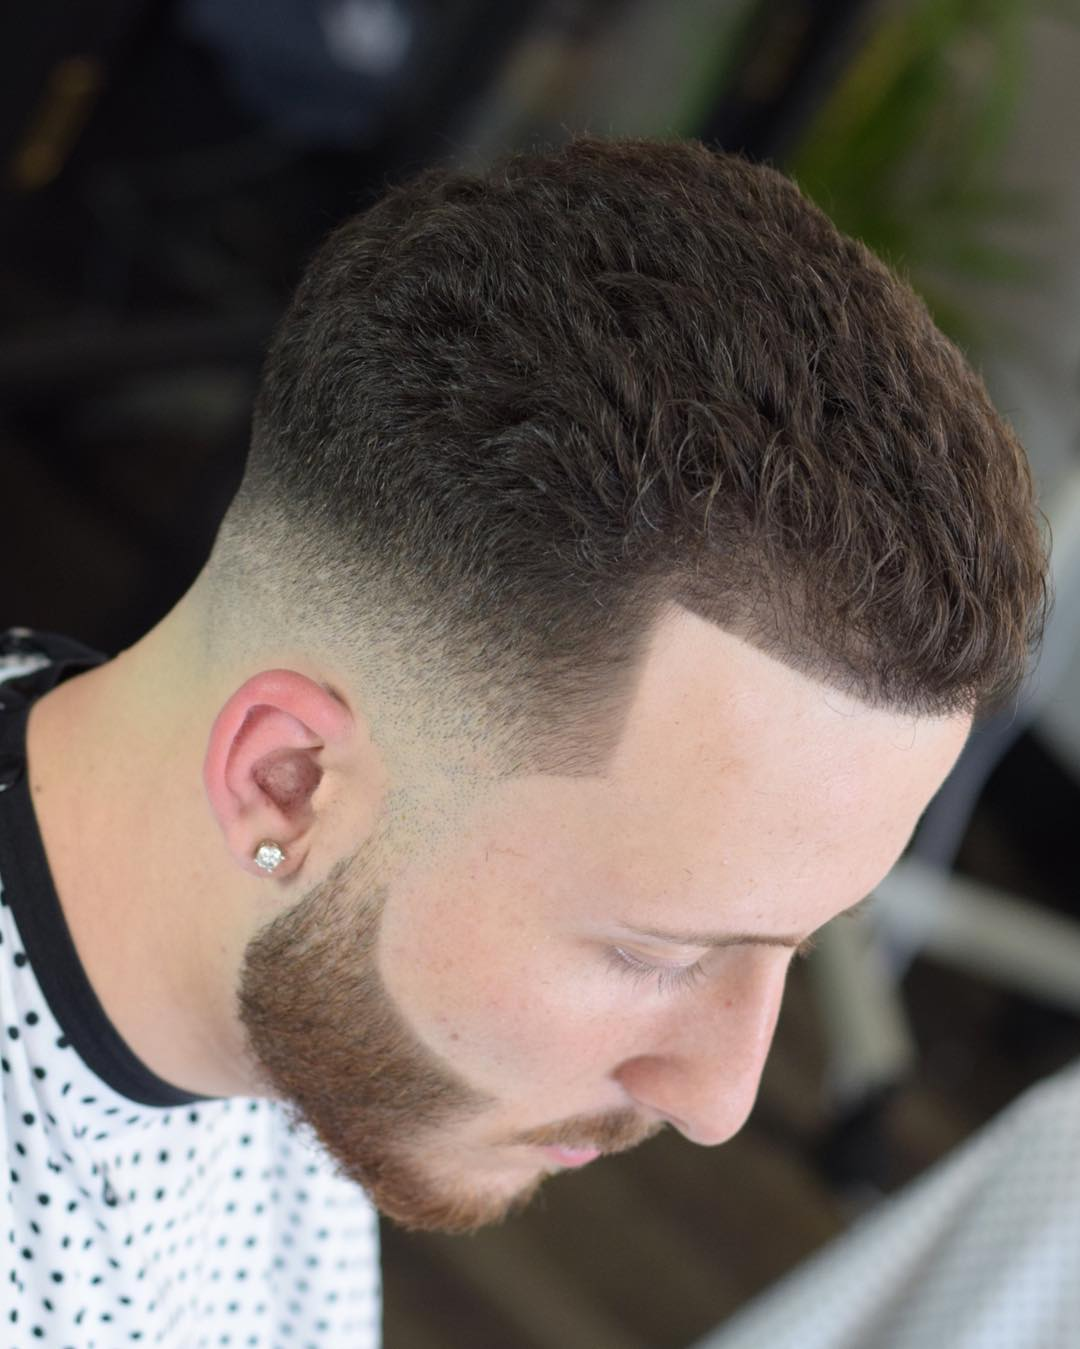 Cool short fade haircut for men curly hair and fresh line up